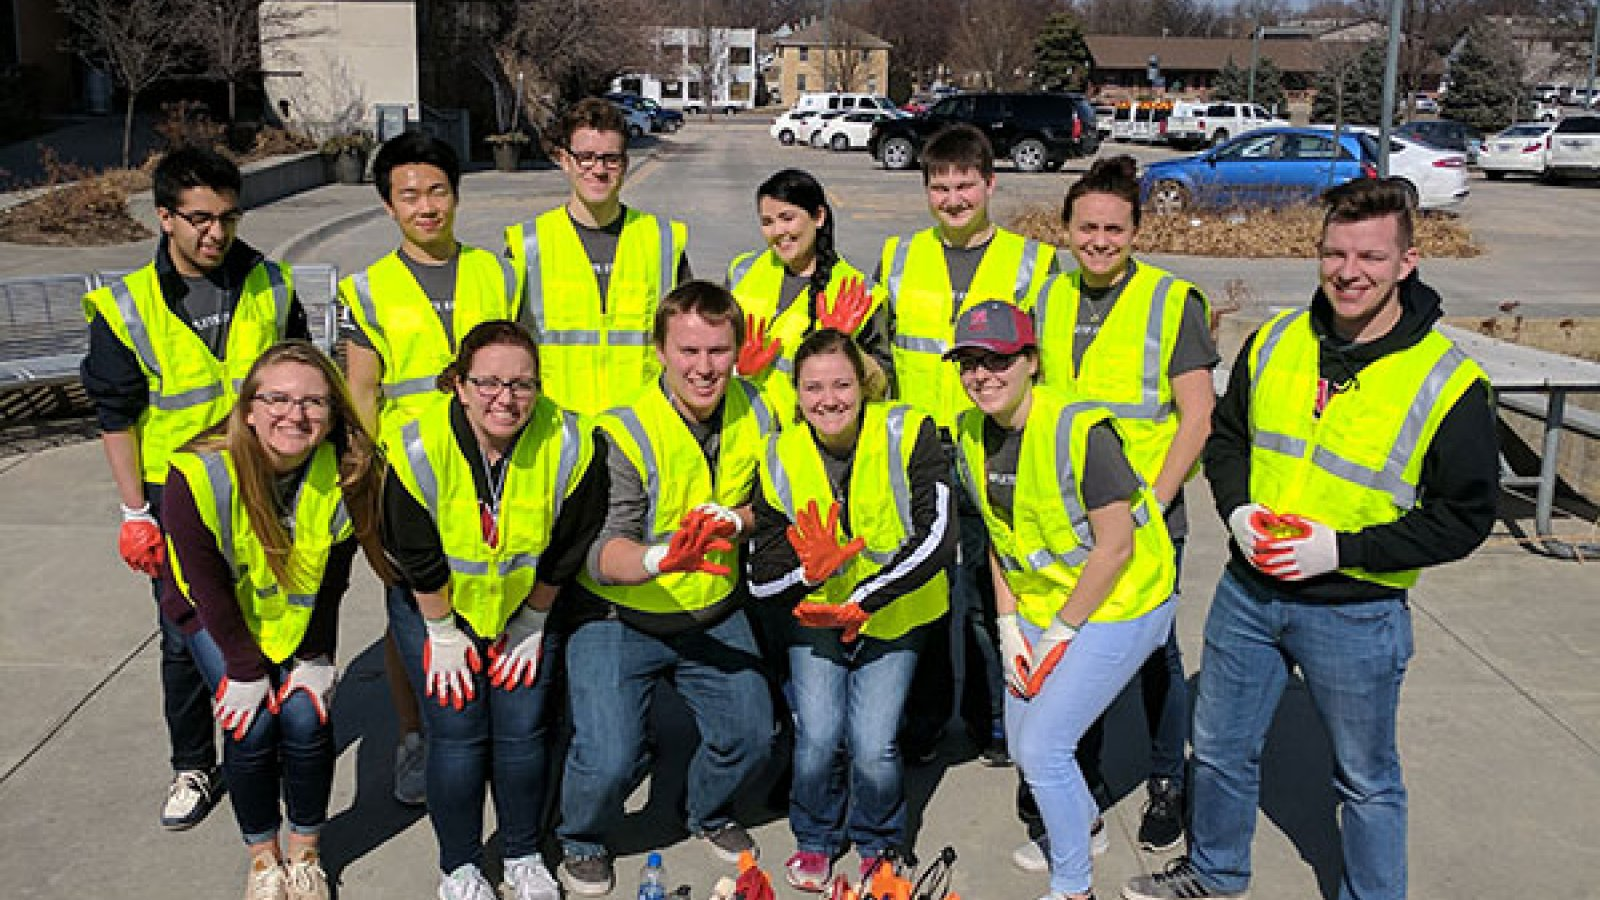 Engineering students took part in community service projects on Saturday, March 3 as part of the Complete Engineer Conference.